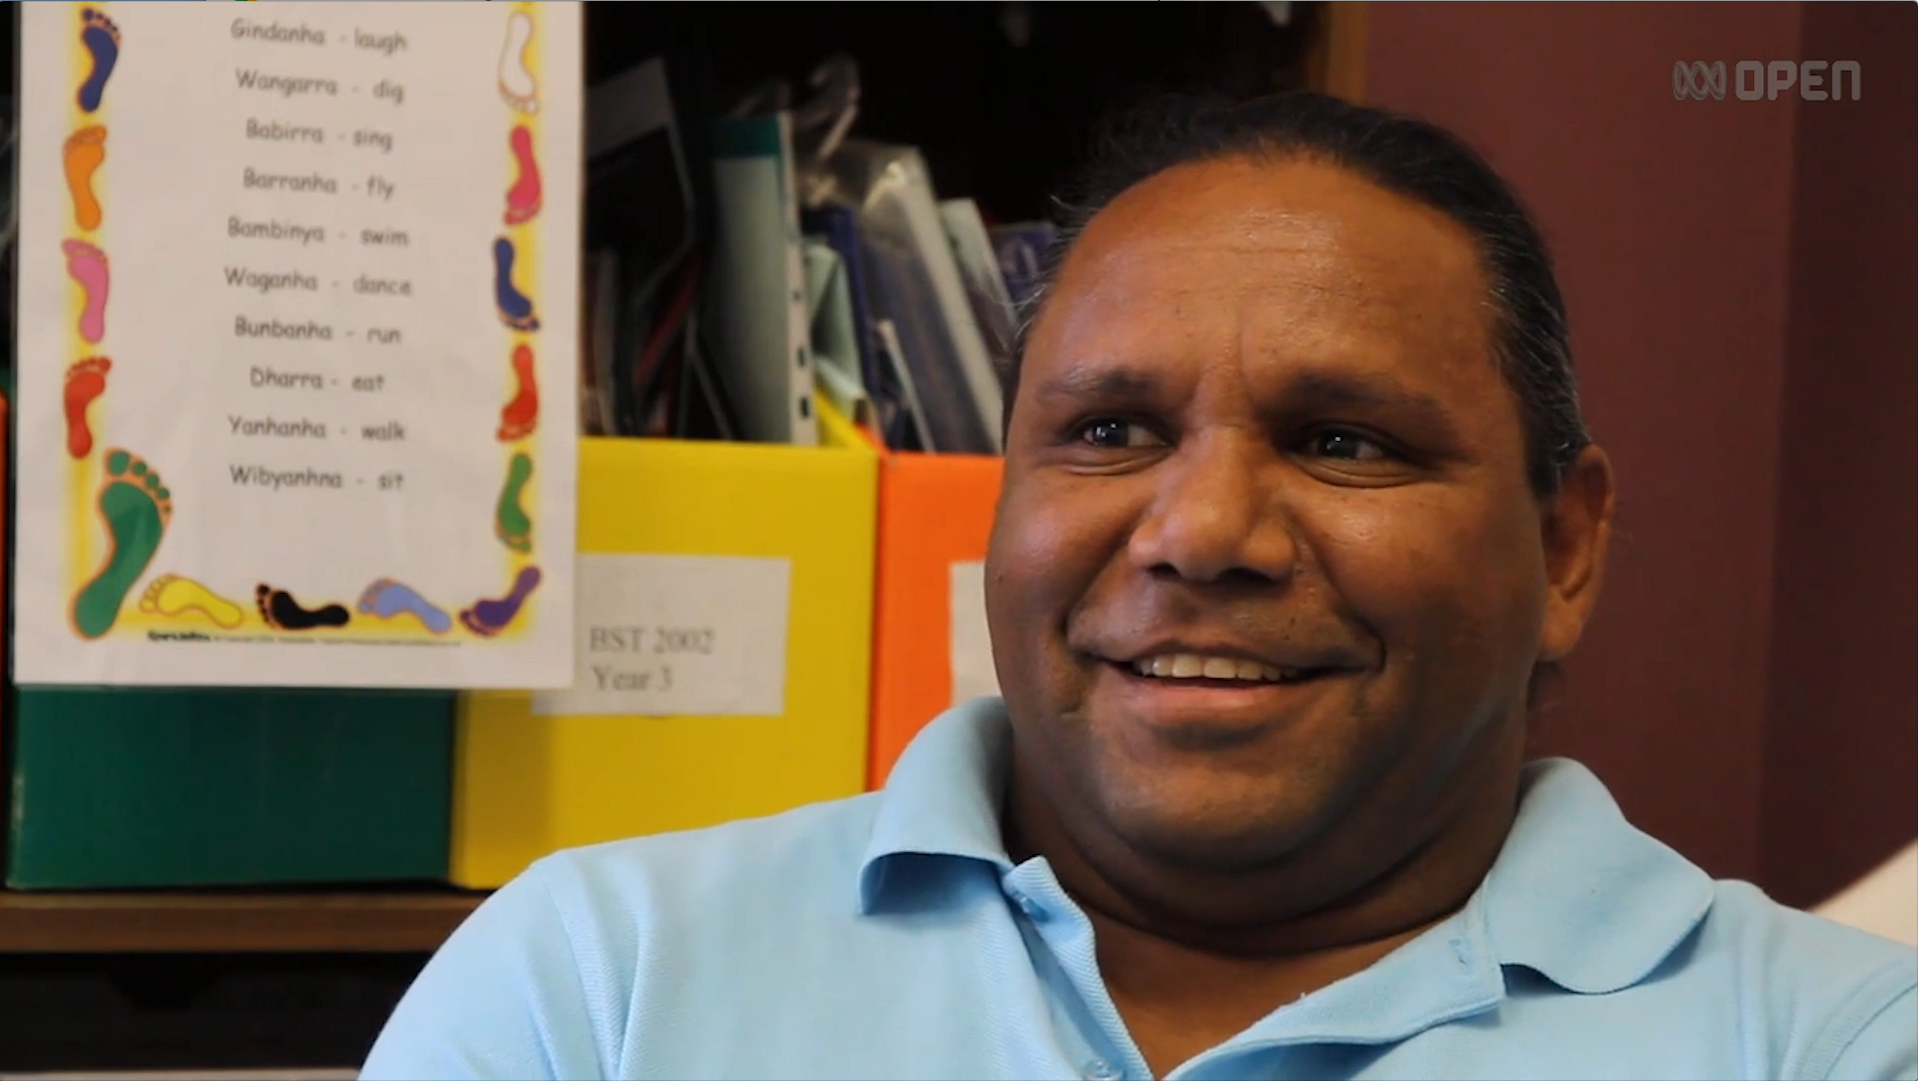 Our Mother Tongue - Wiradjuri